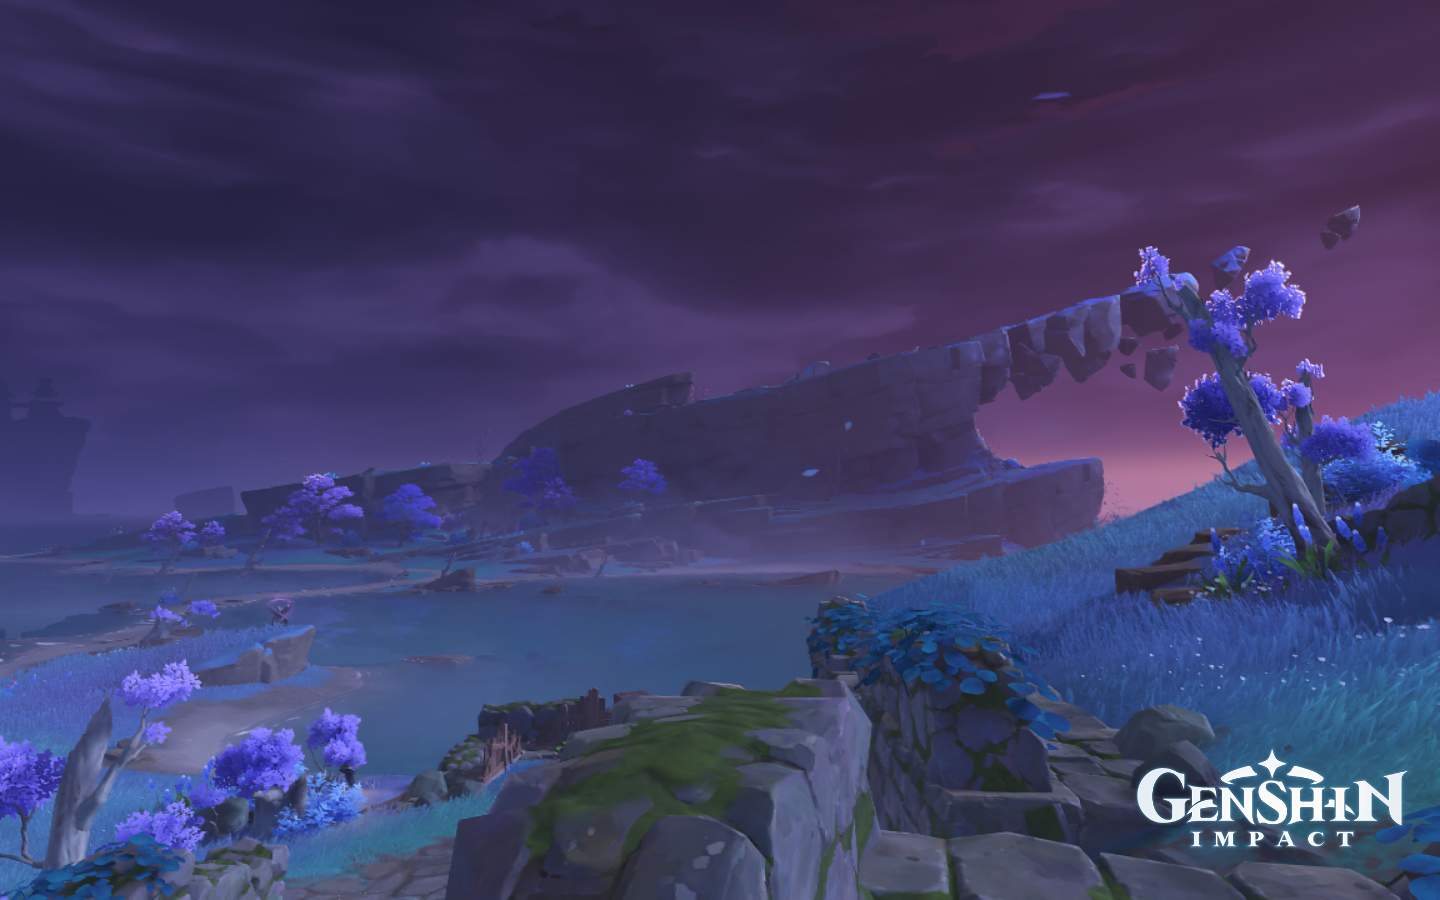 A view of a pointy cliff surrounded in a purple hue in Genshin Impact